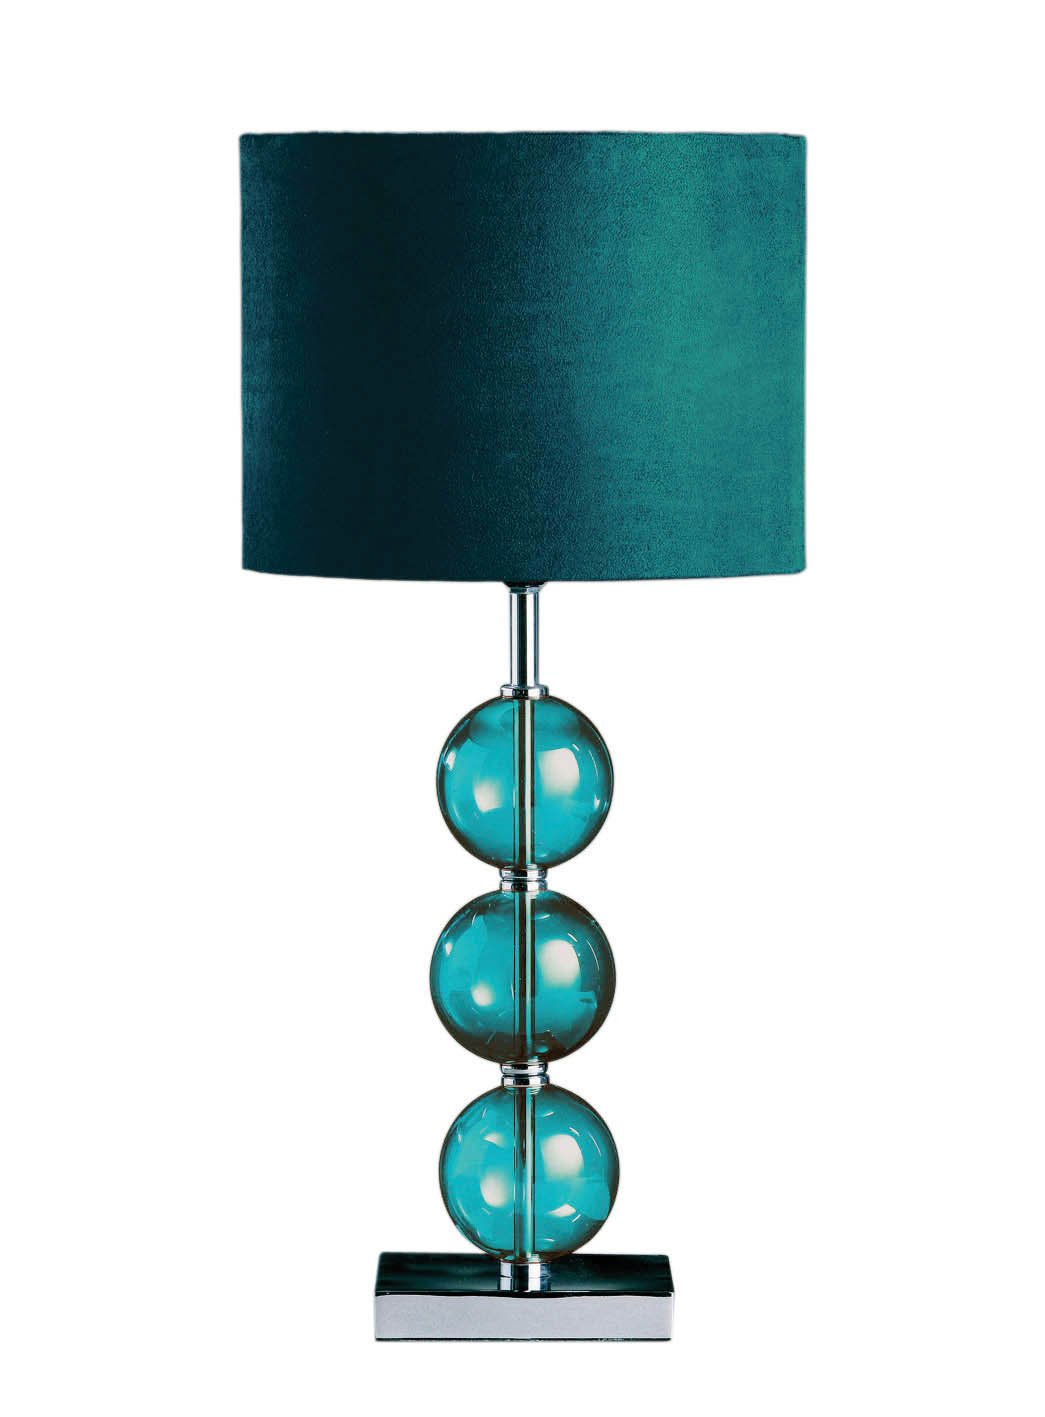 Premier Housewares Mistro Table Lamp With 3 Glass Balls, Chrome Base And  Faux Suede Shade   Teal: Amazon.co.uk: Lighting